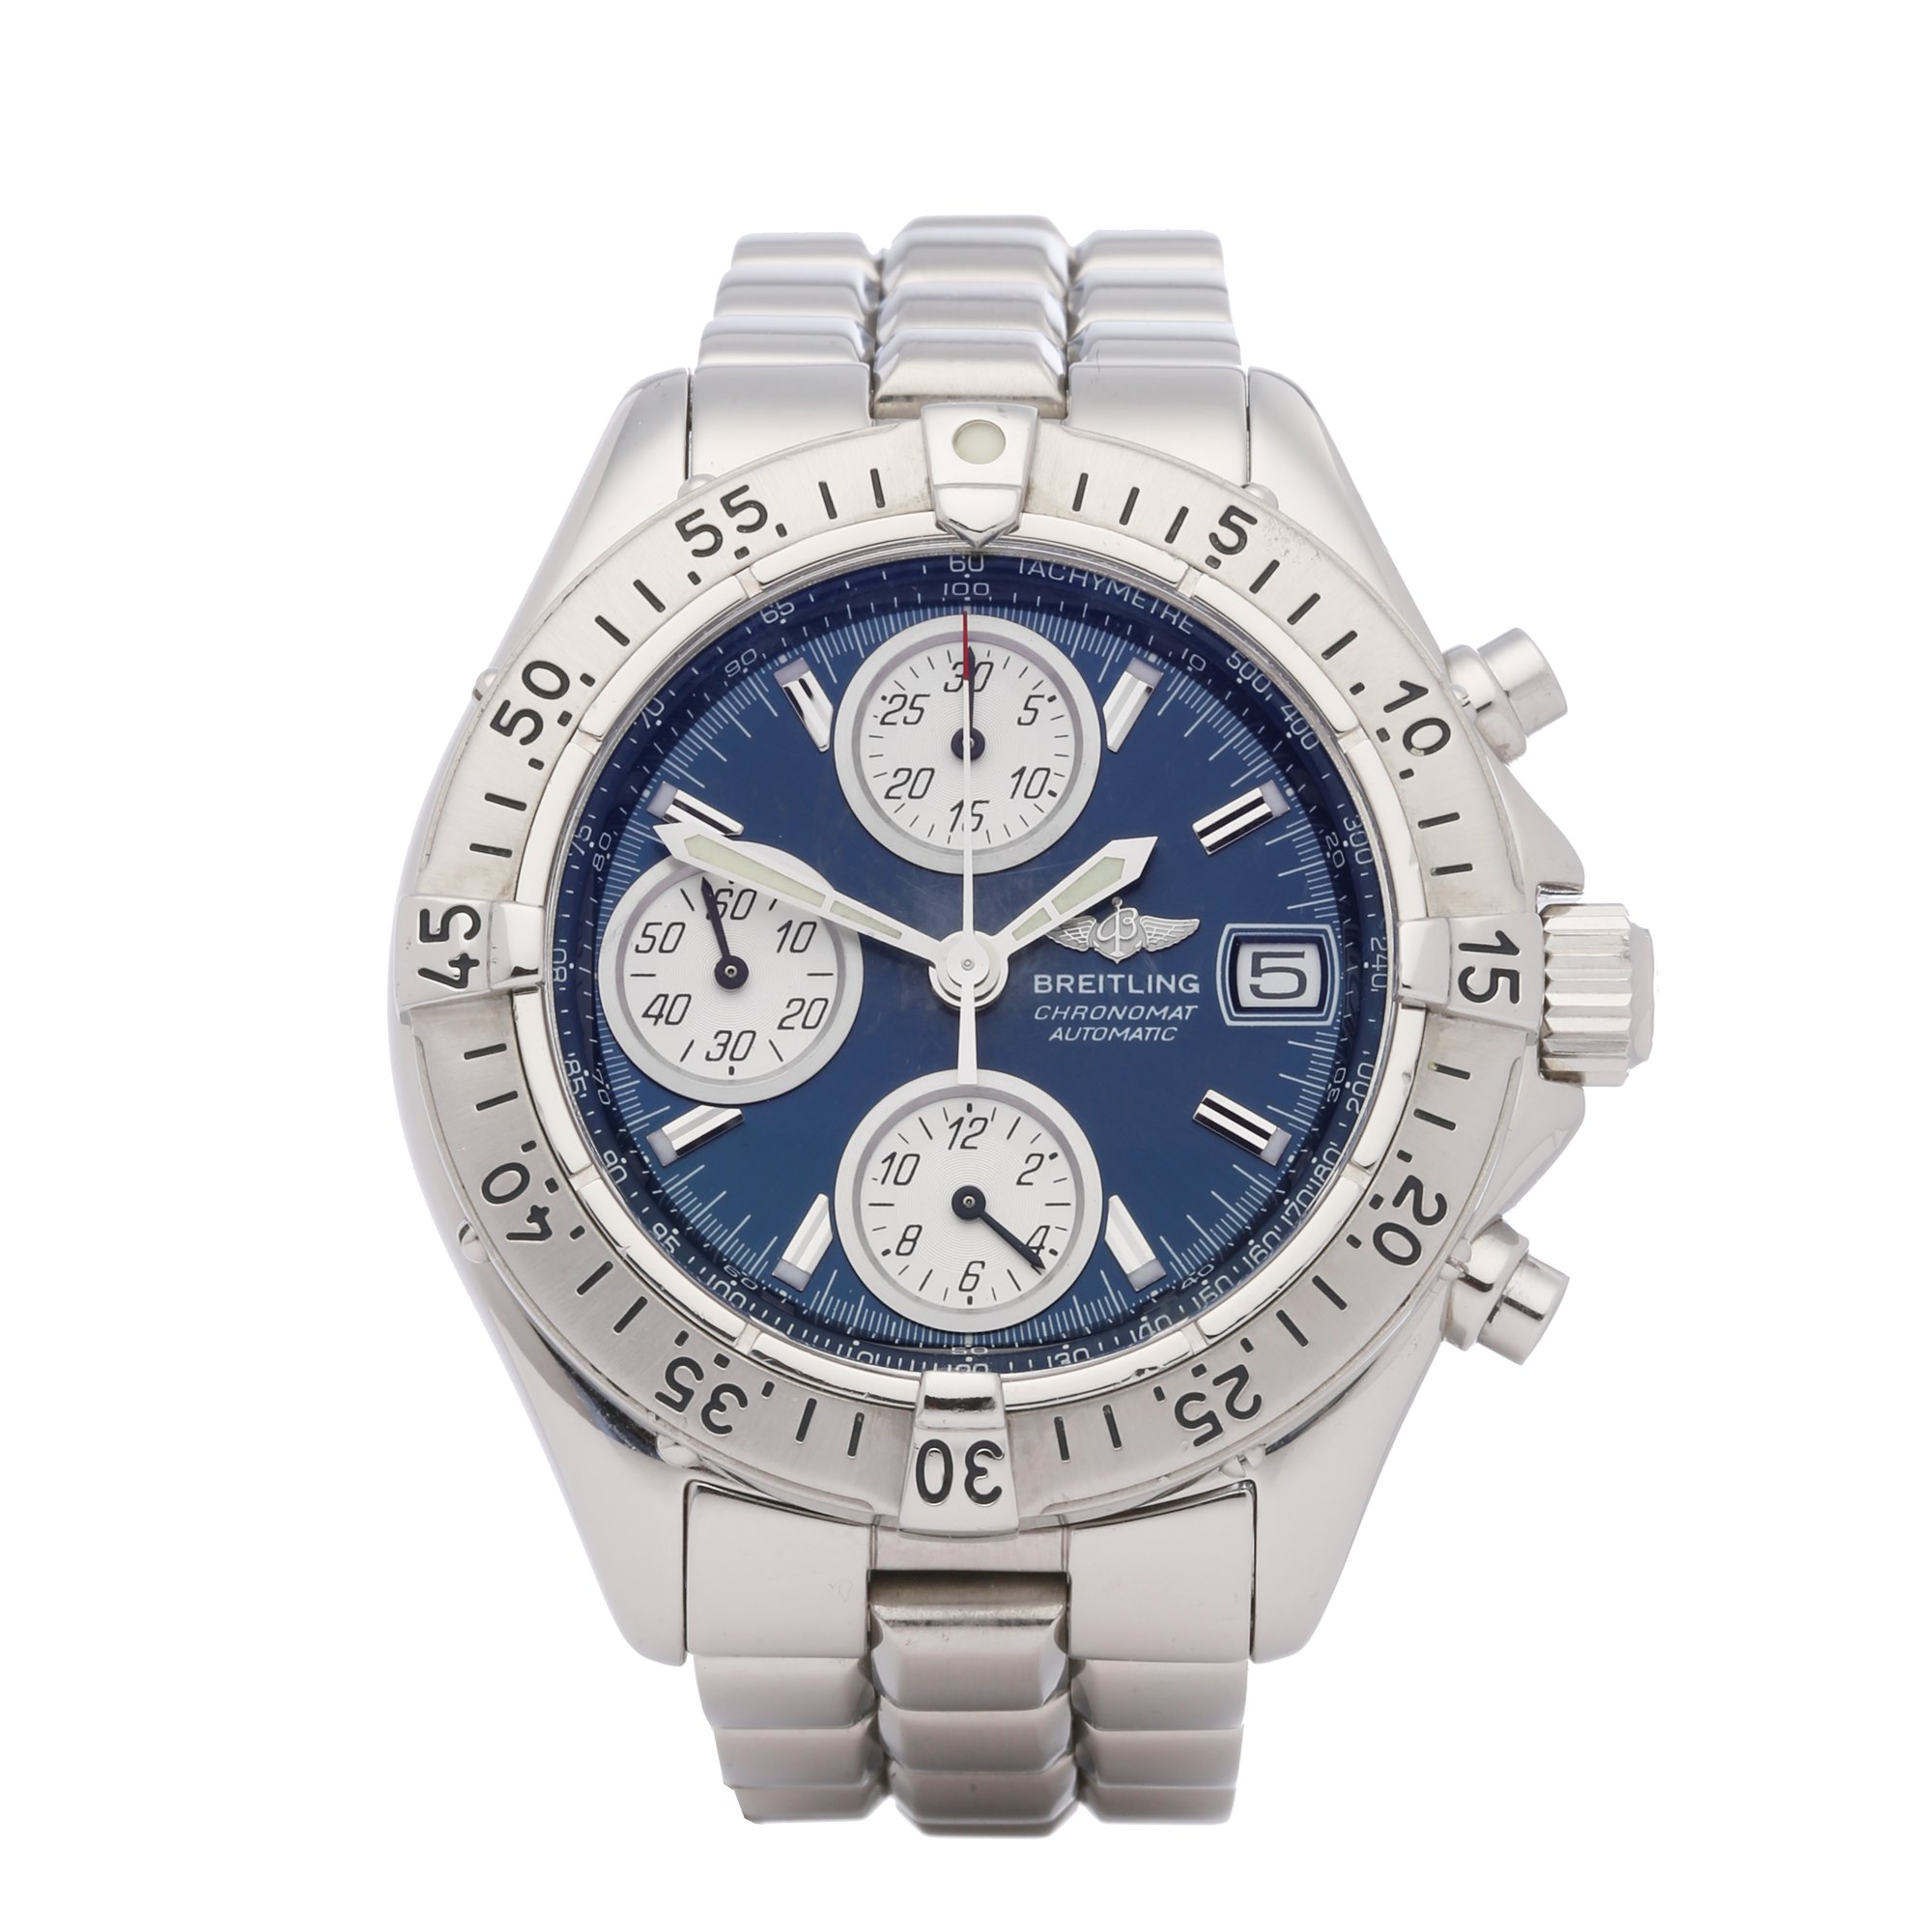 Breitling Chronomat Chronograph Roestvrij Staal A13335